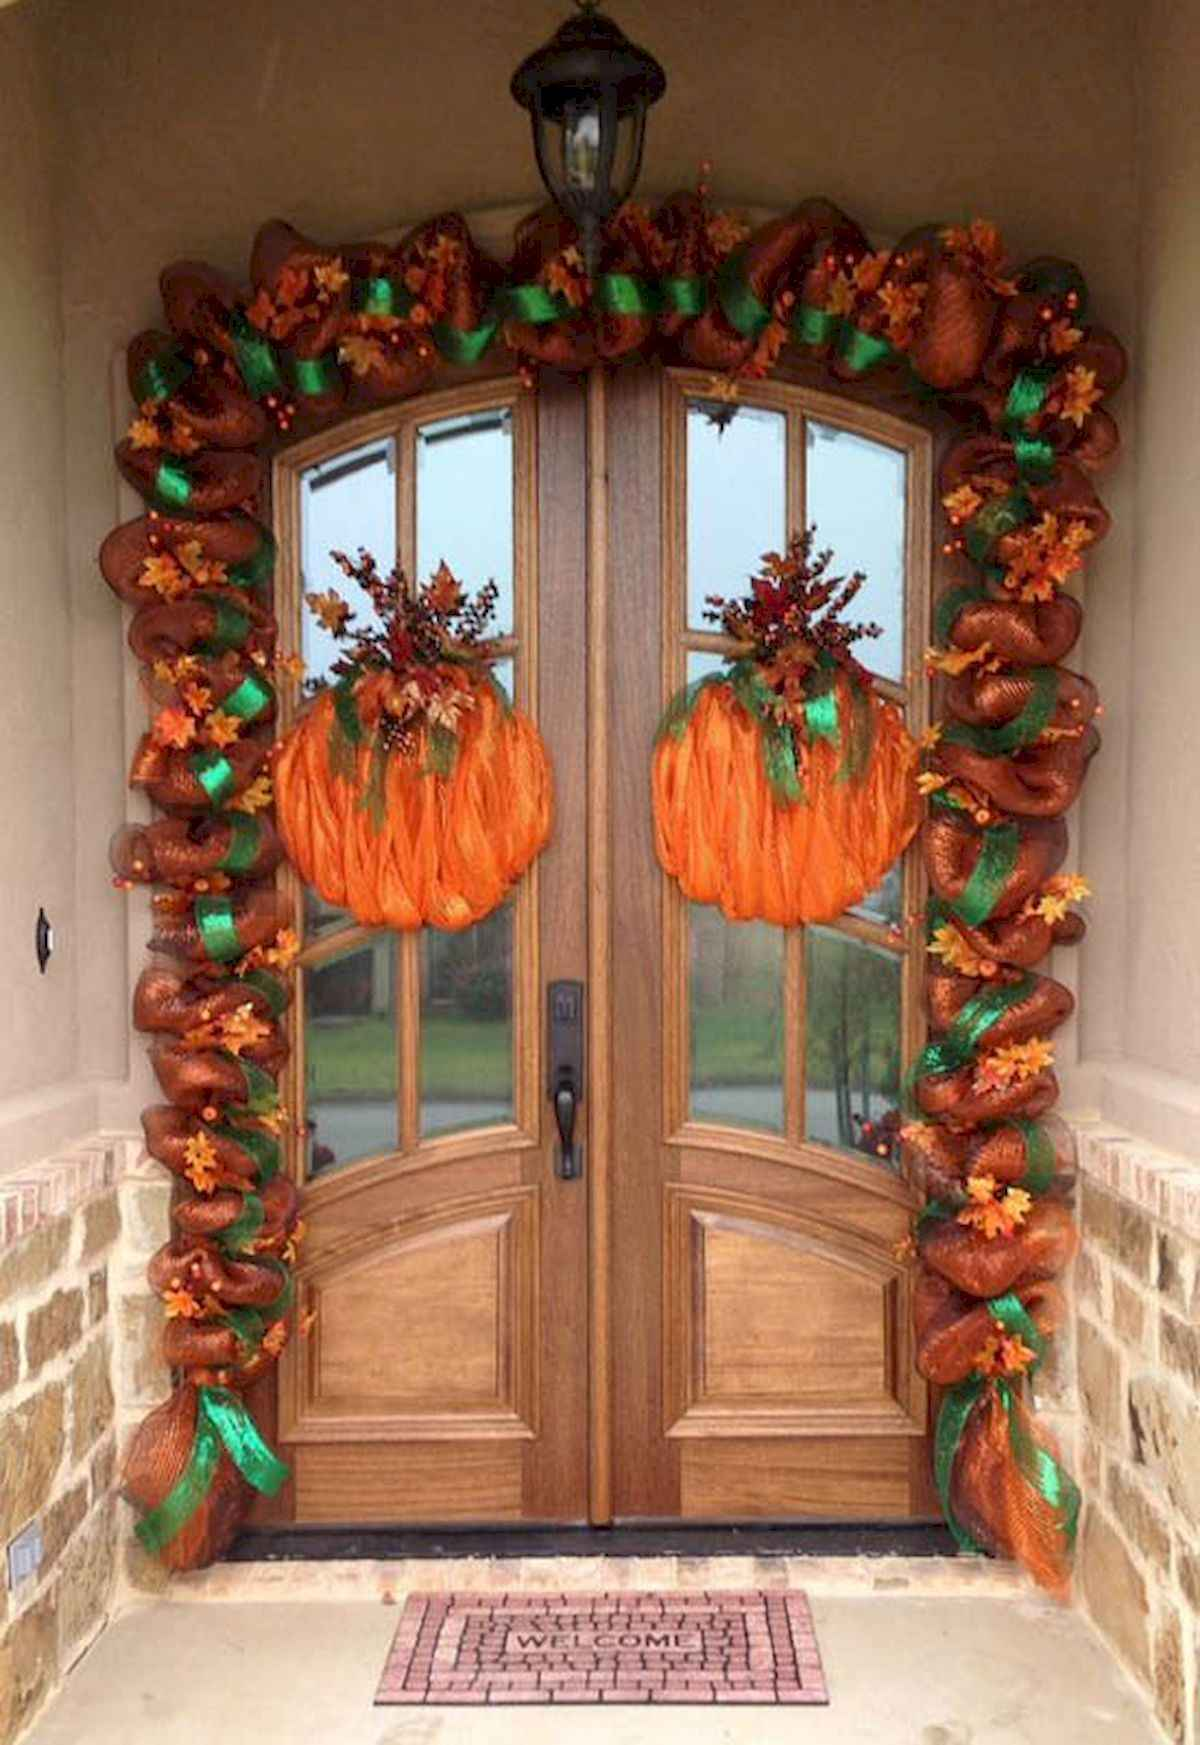 35 easy thanksgiving decor ideas on a budget (27)